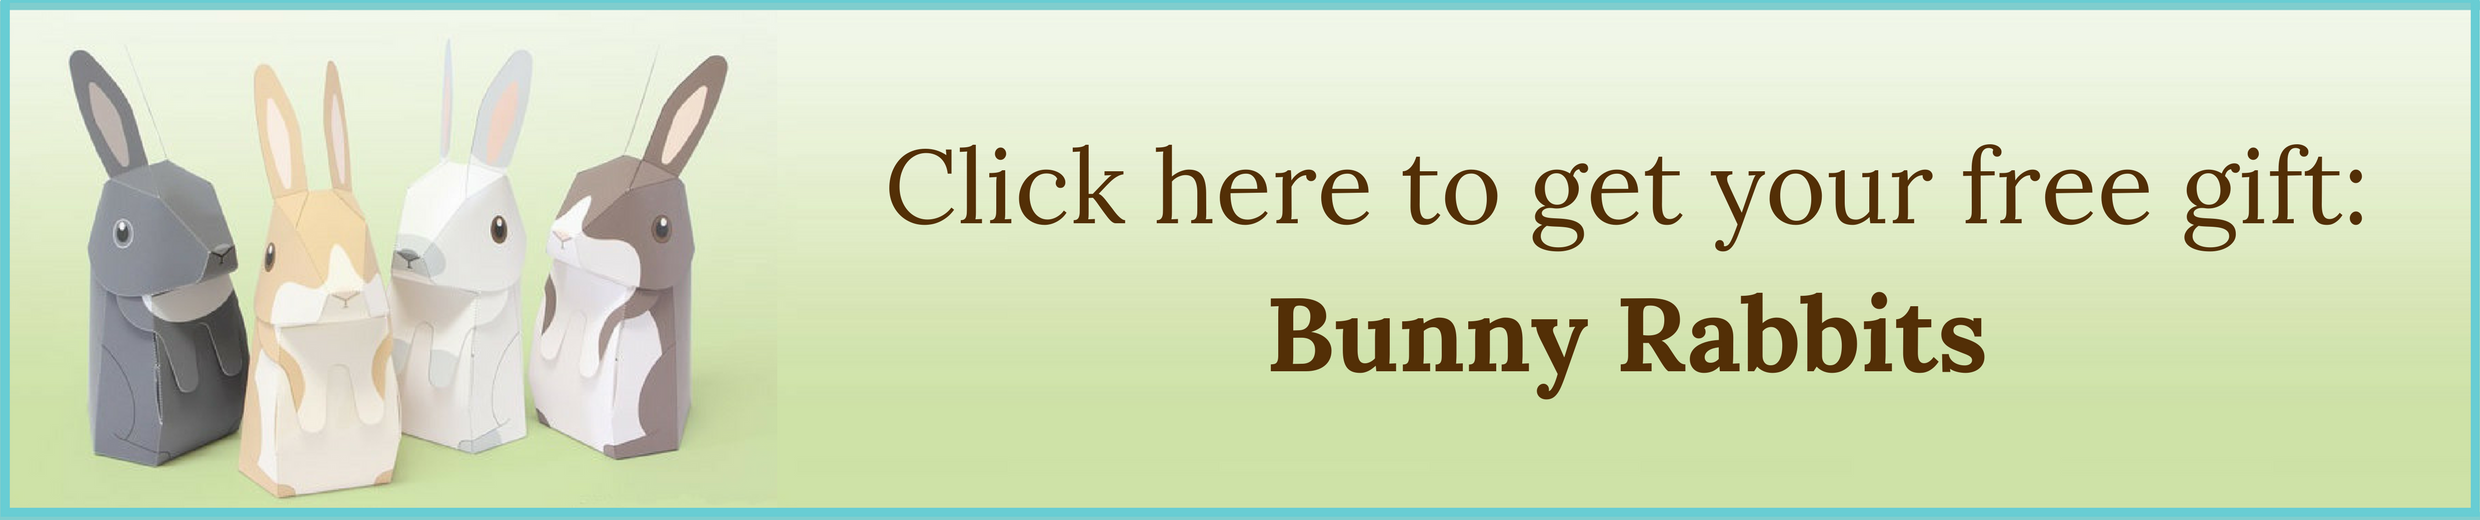 Click here to get your Bunny Rabbits